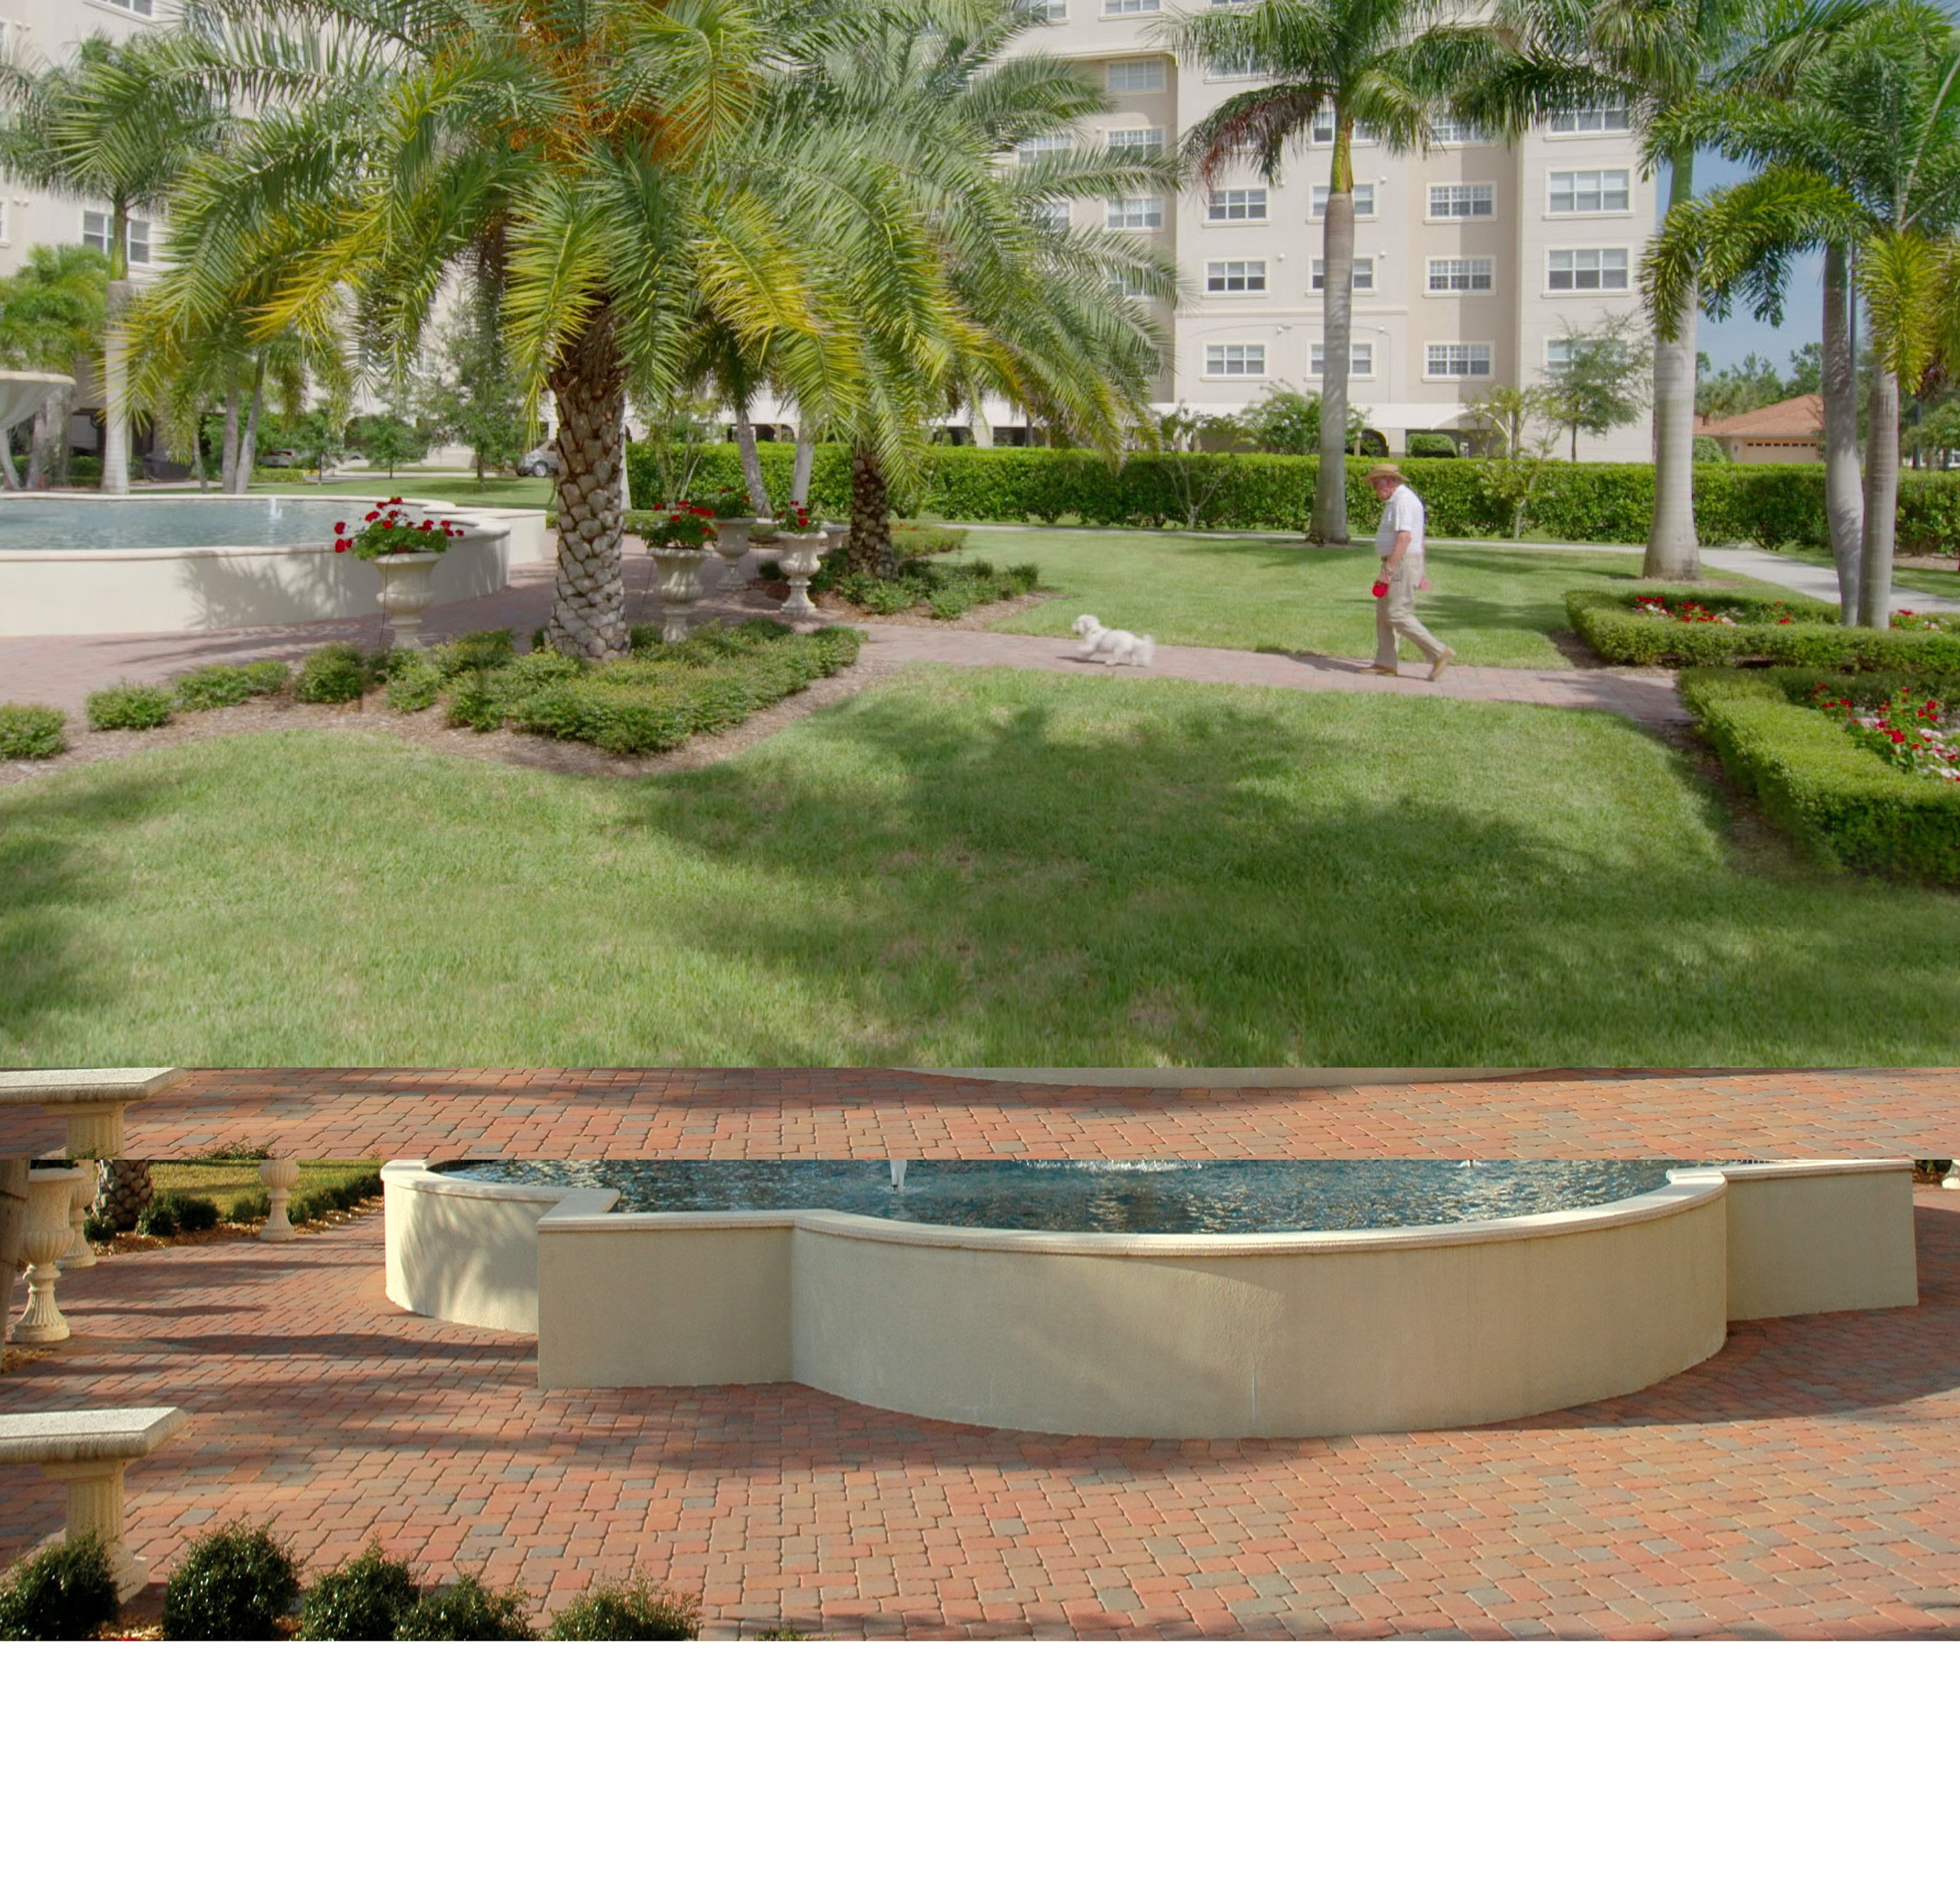 Living Room In Venice Fl: Assisted Living